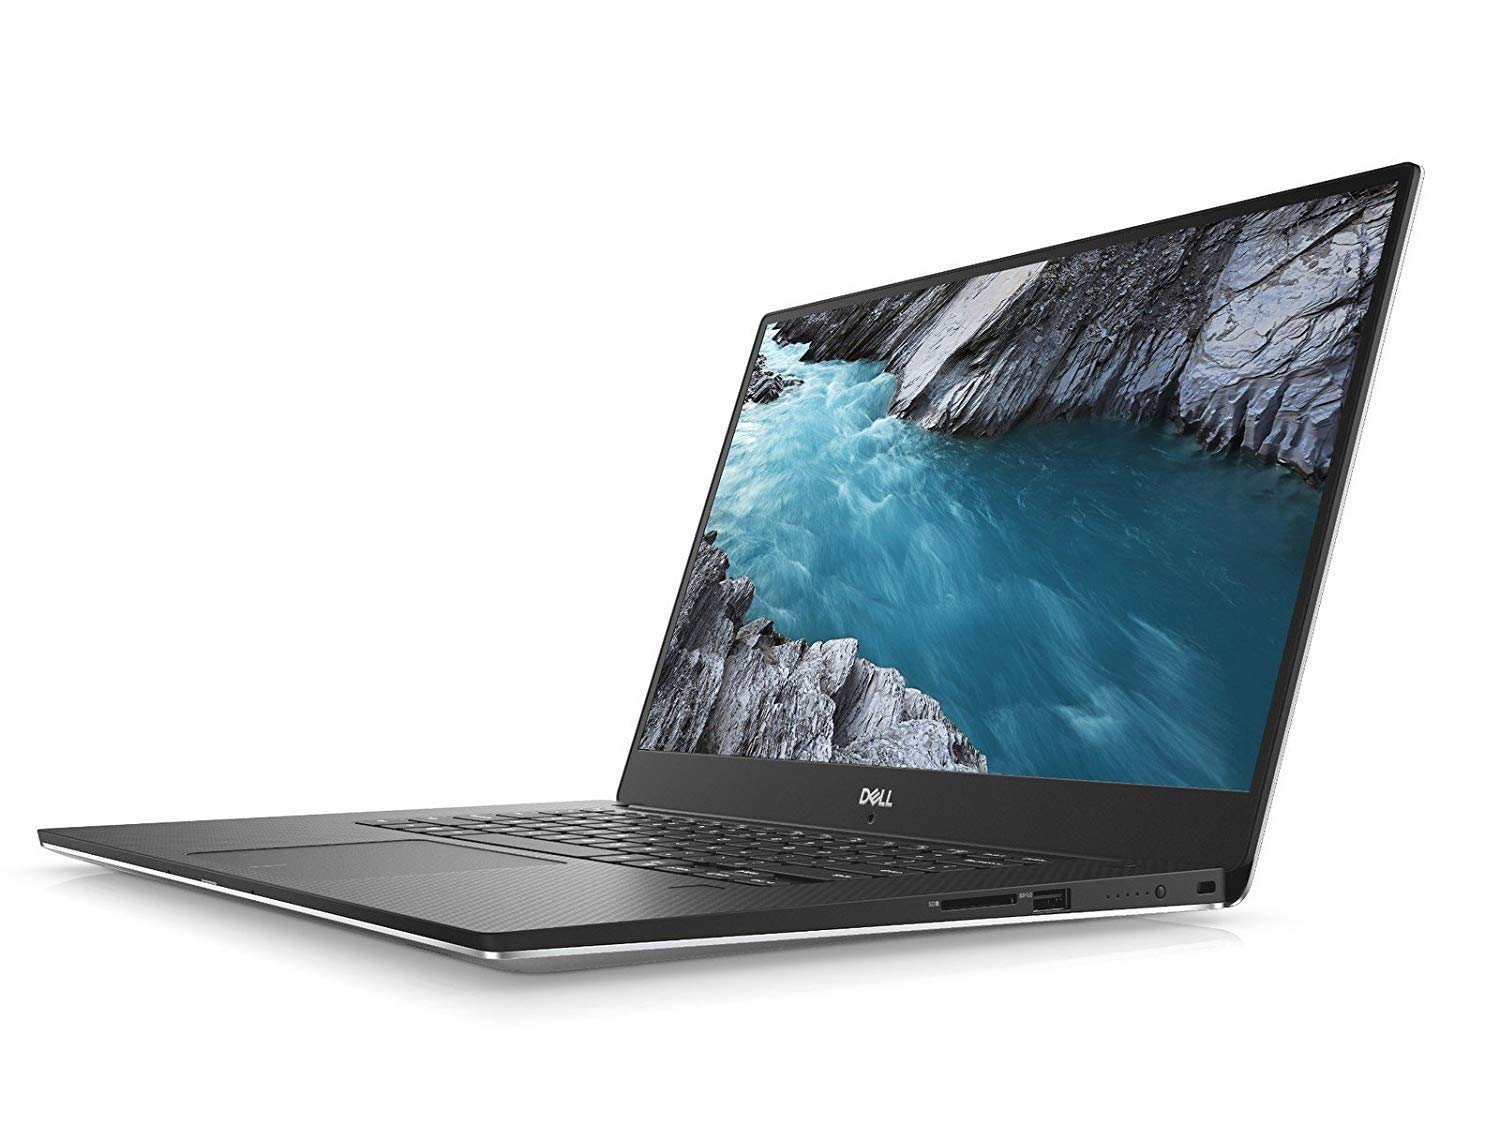 Best Laptop for An Architect